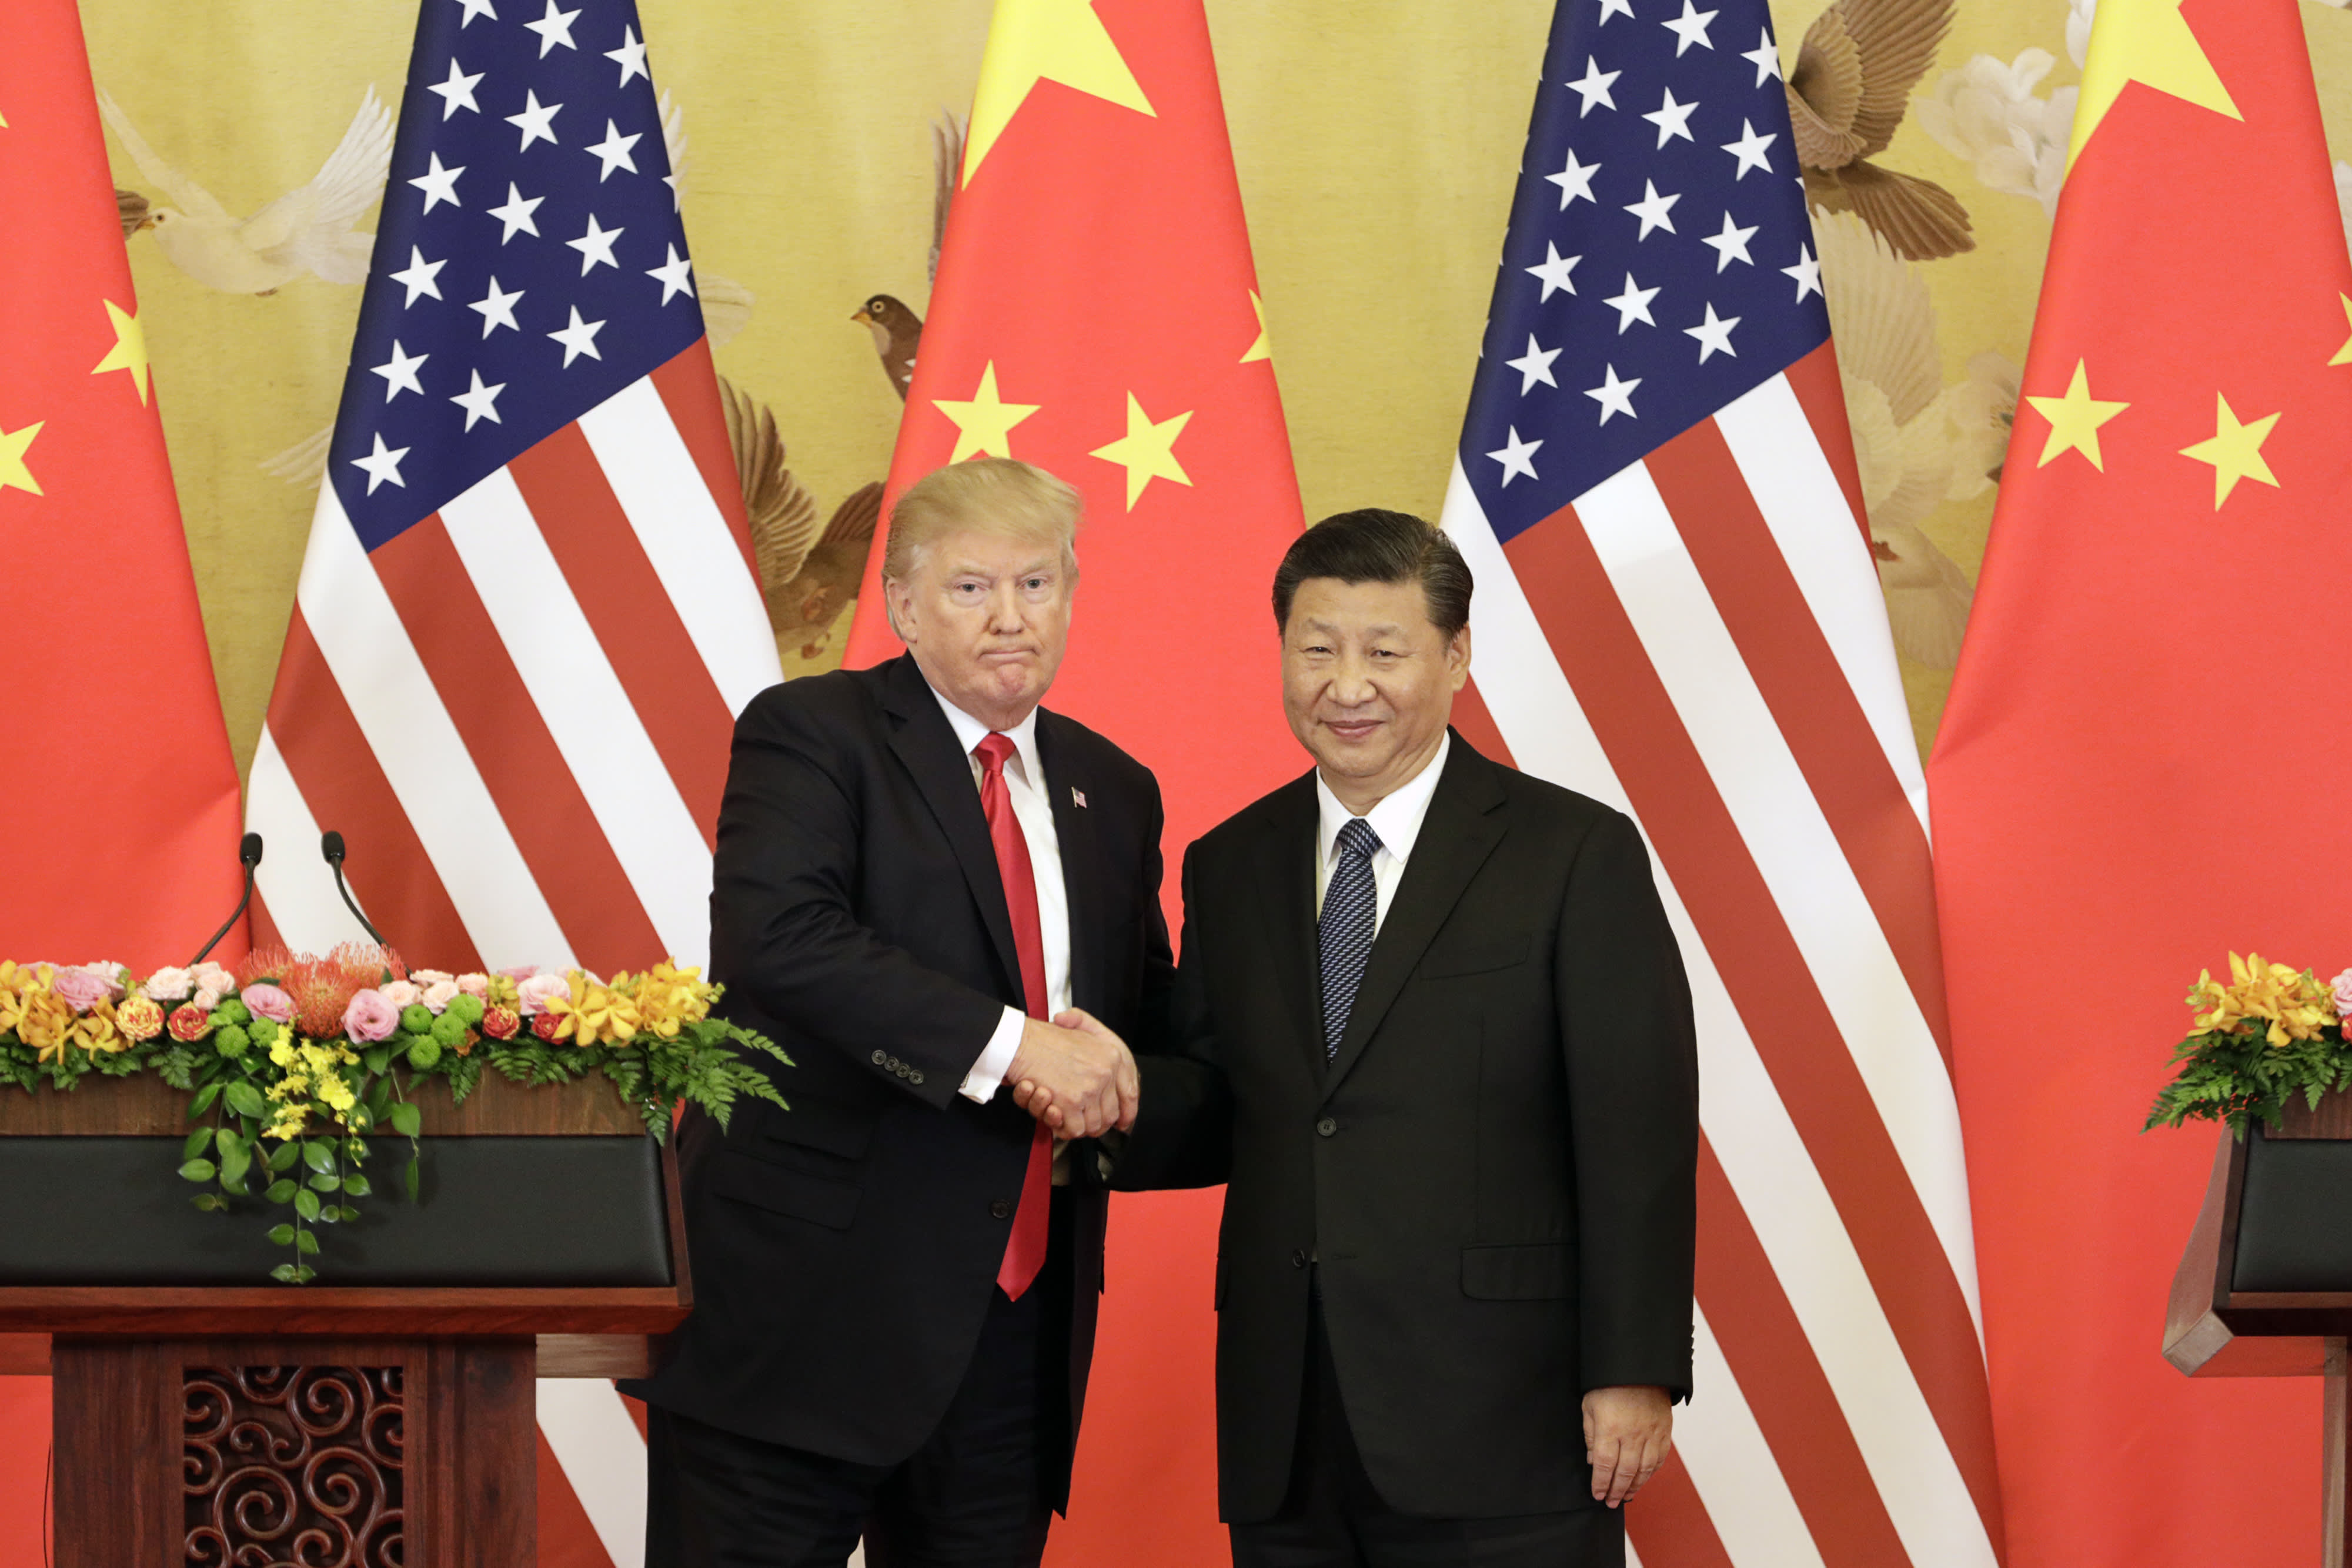 West Virginia still waiting on $84 billion investment from China